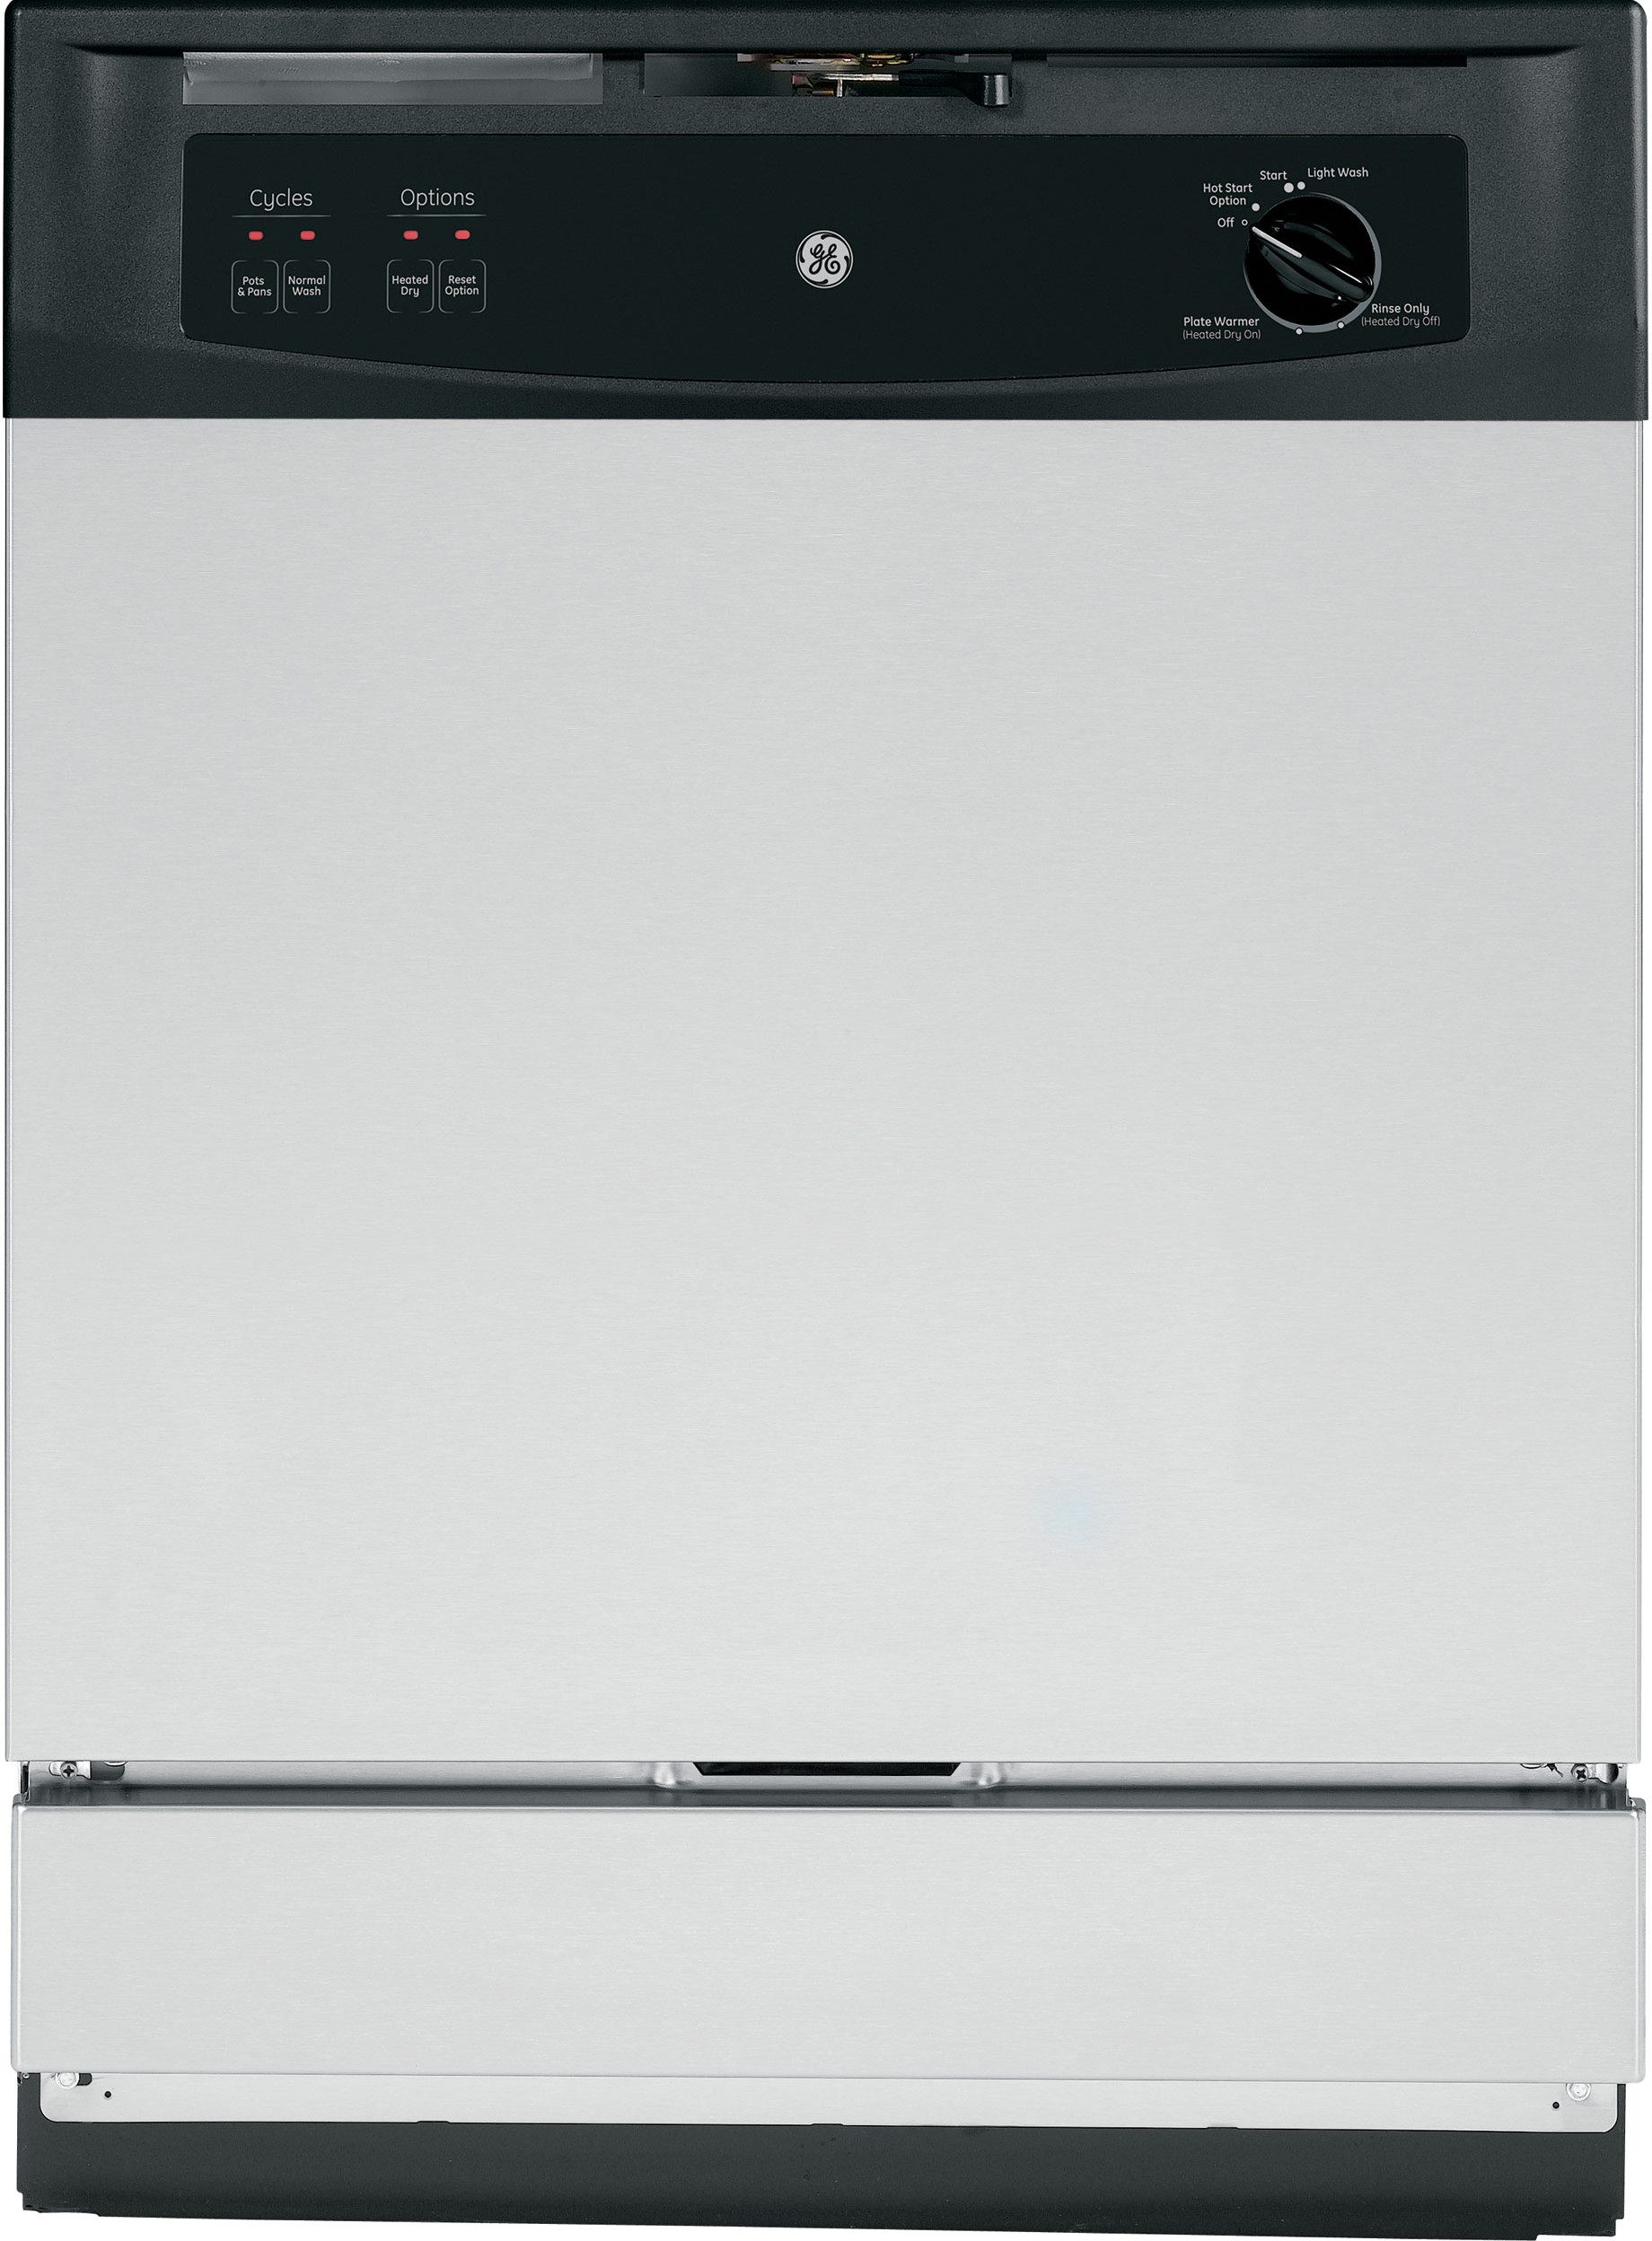 Stainless Steel Dishwasher Panel Kit Ge Dishwashers To Restore Glassware And Plates To Sparkling Conditions